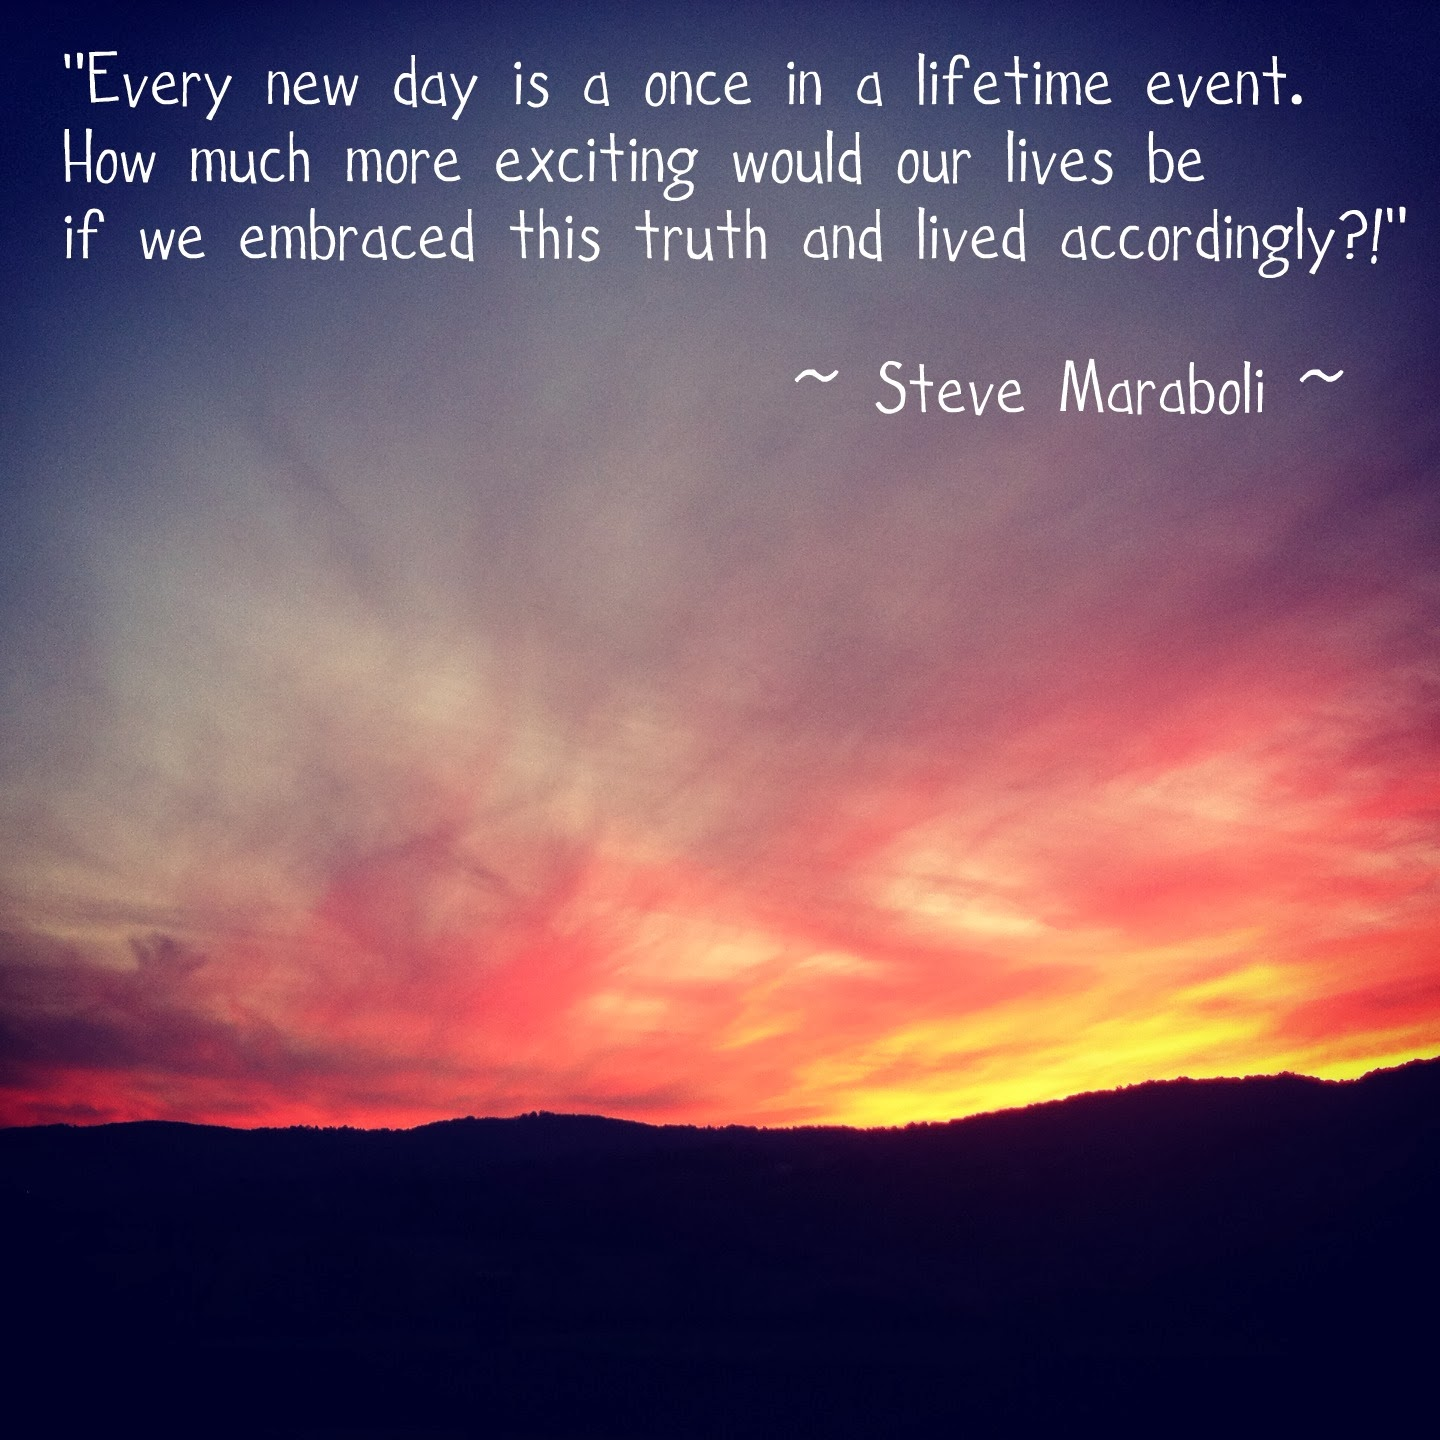 Quotes About Life's Journey For Fb Real Food for F...